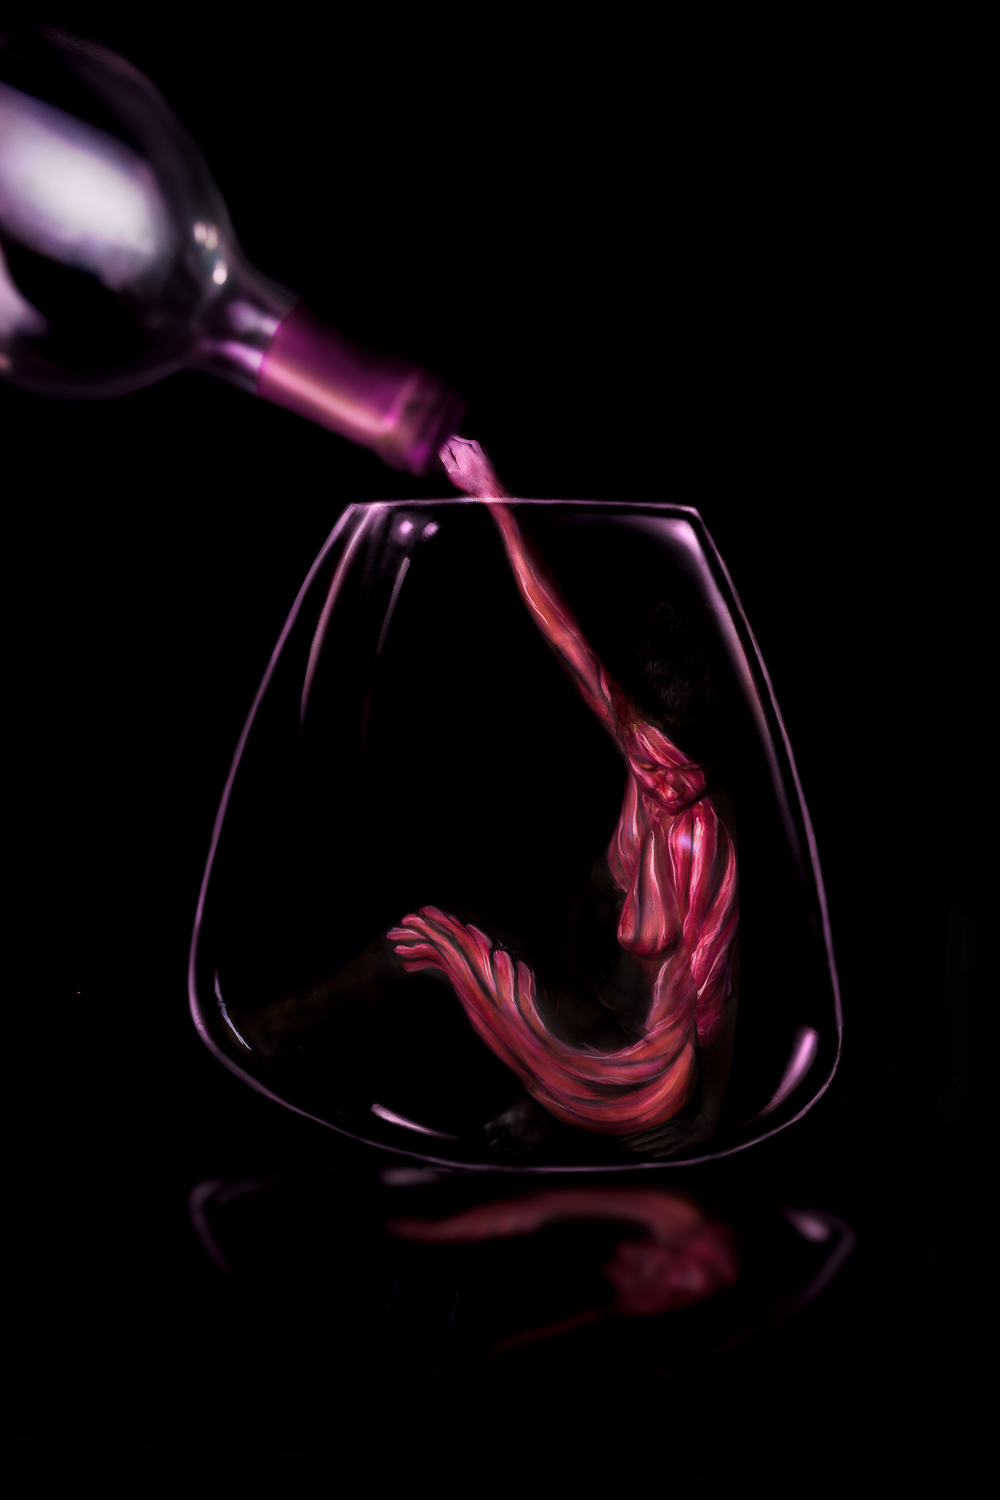 POUR THE WINE